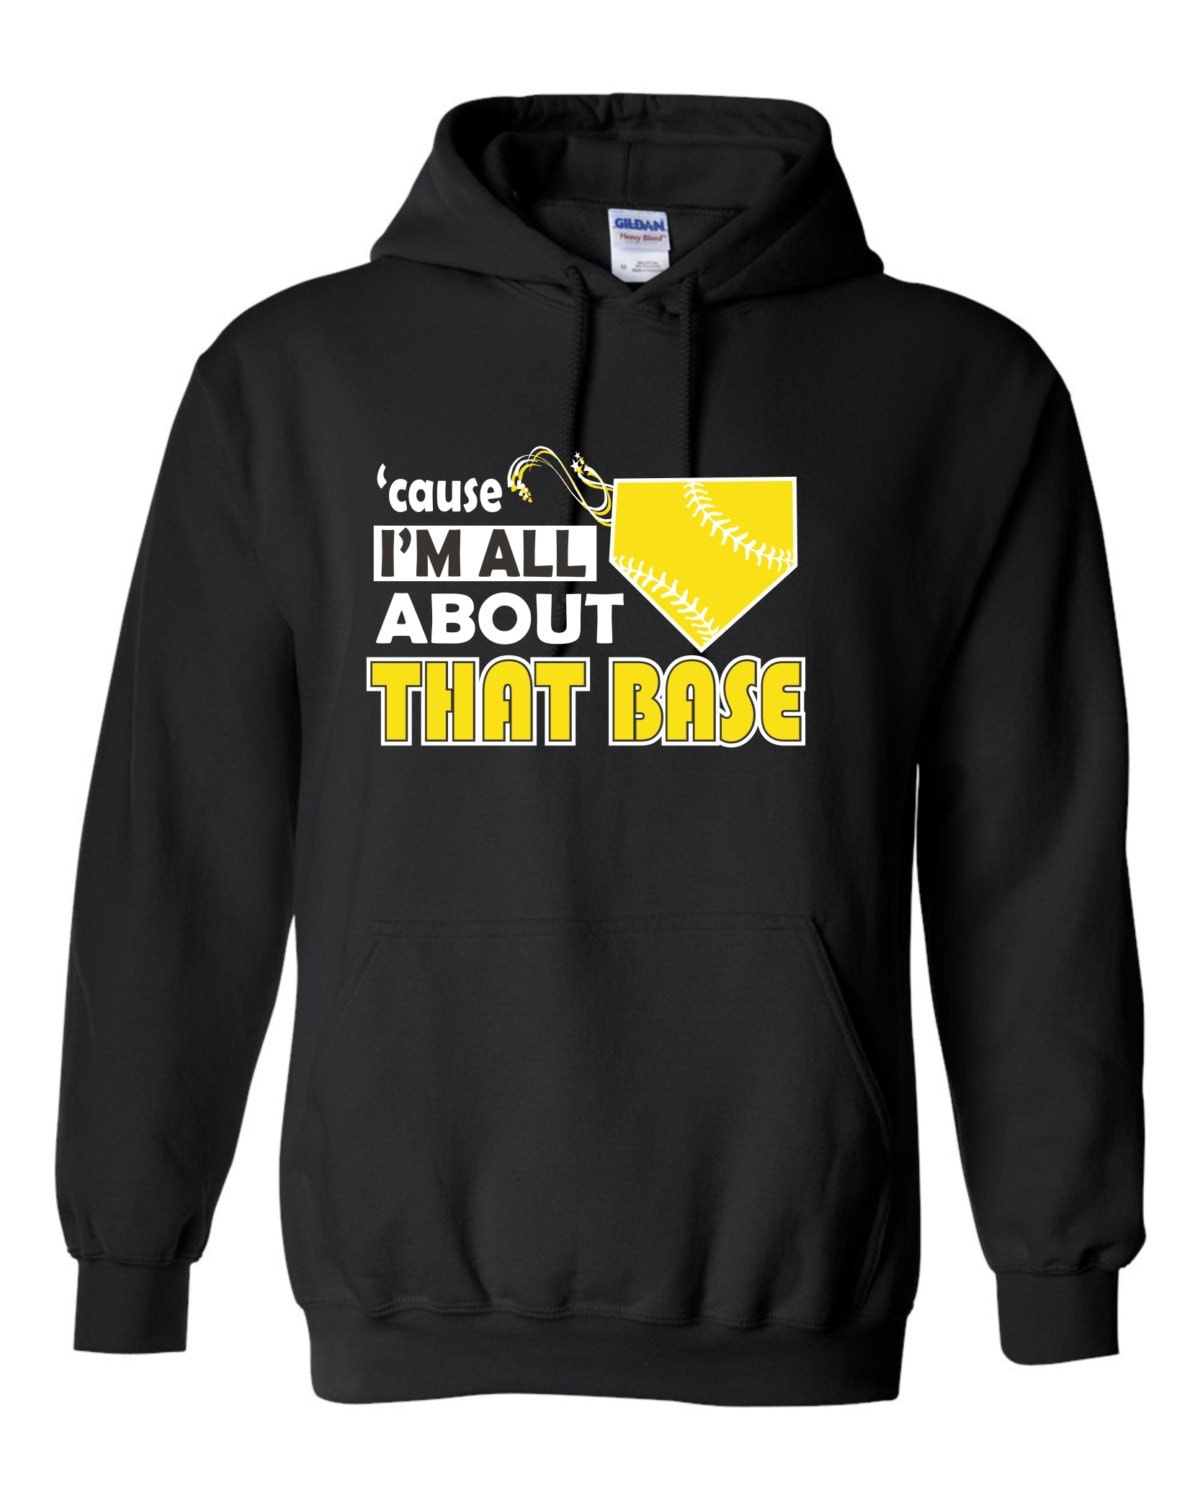 Cause i m all about that base girls softball hoodie by ncwdesigns